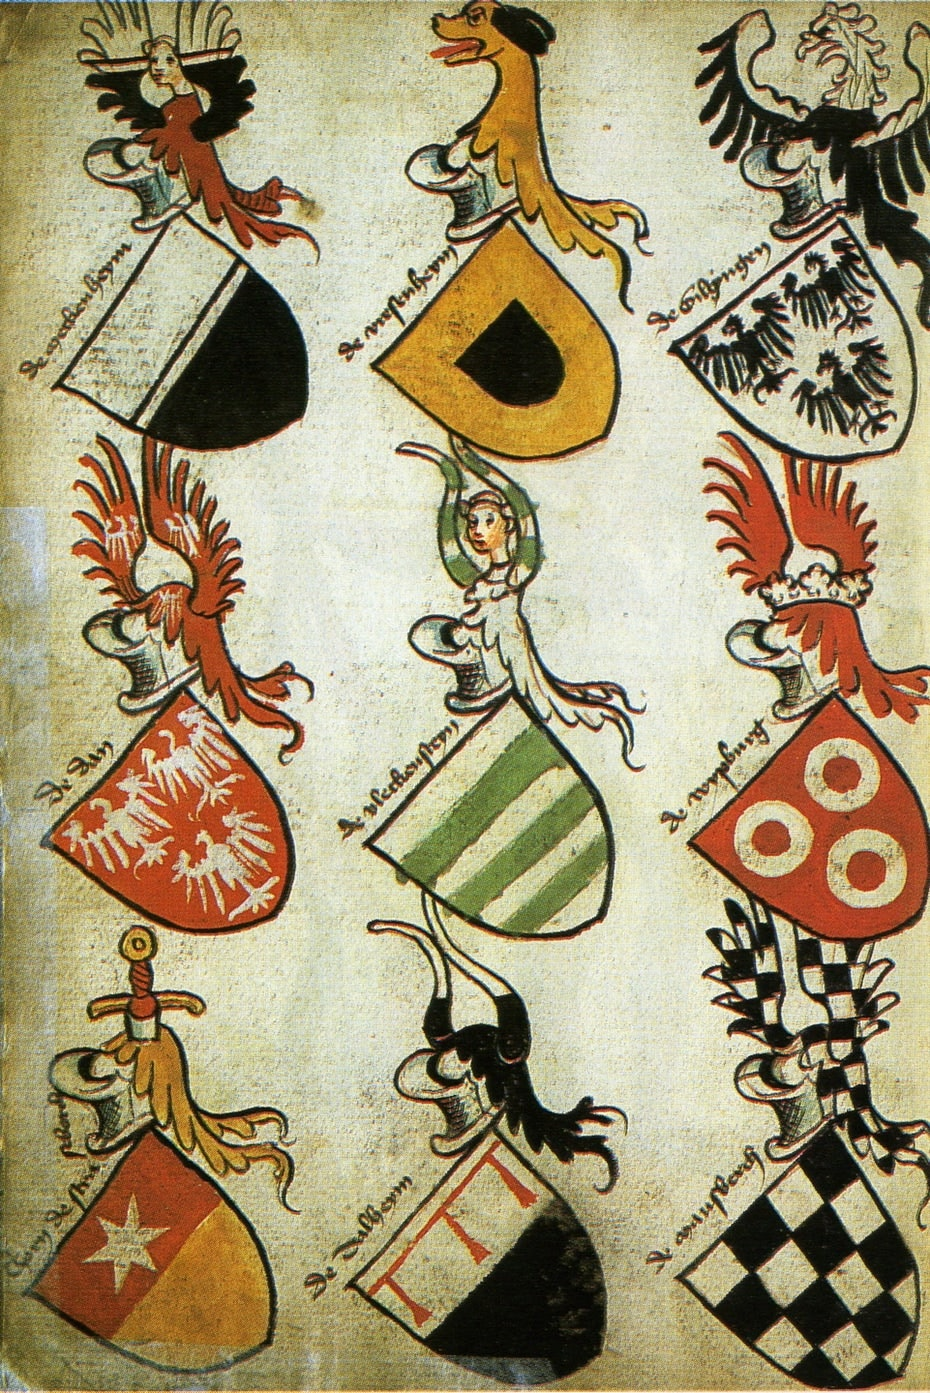 1600s German coats-of-arms